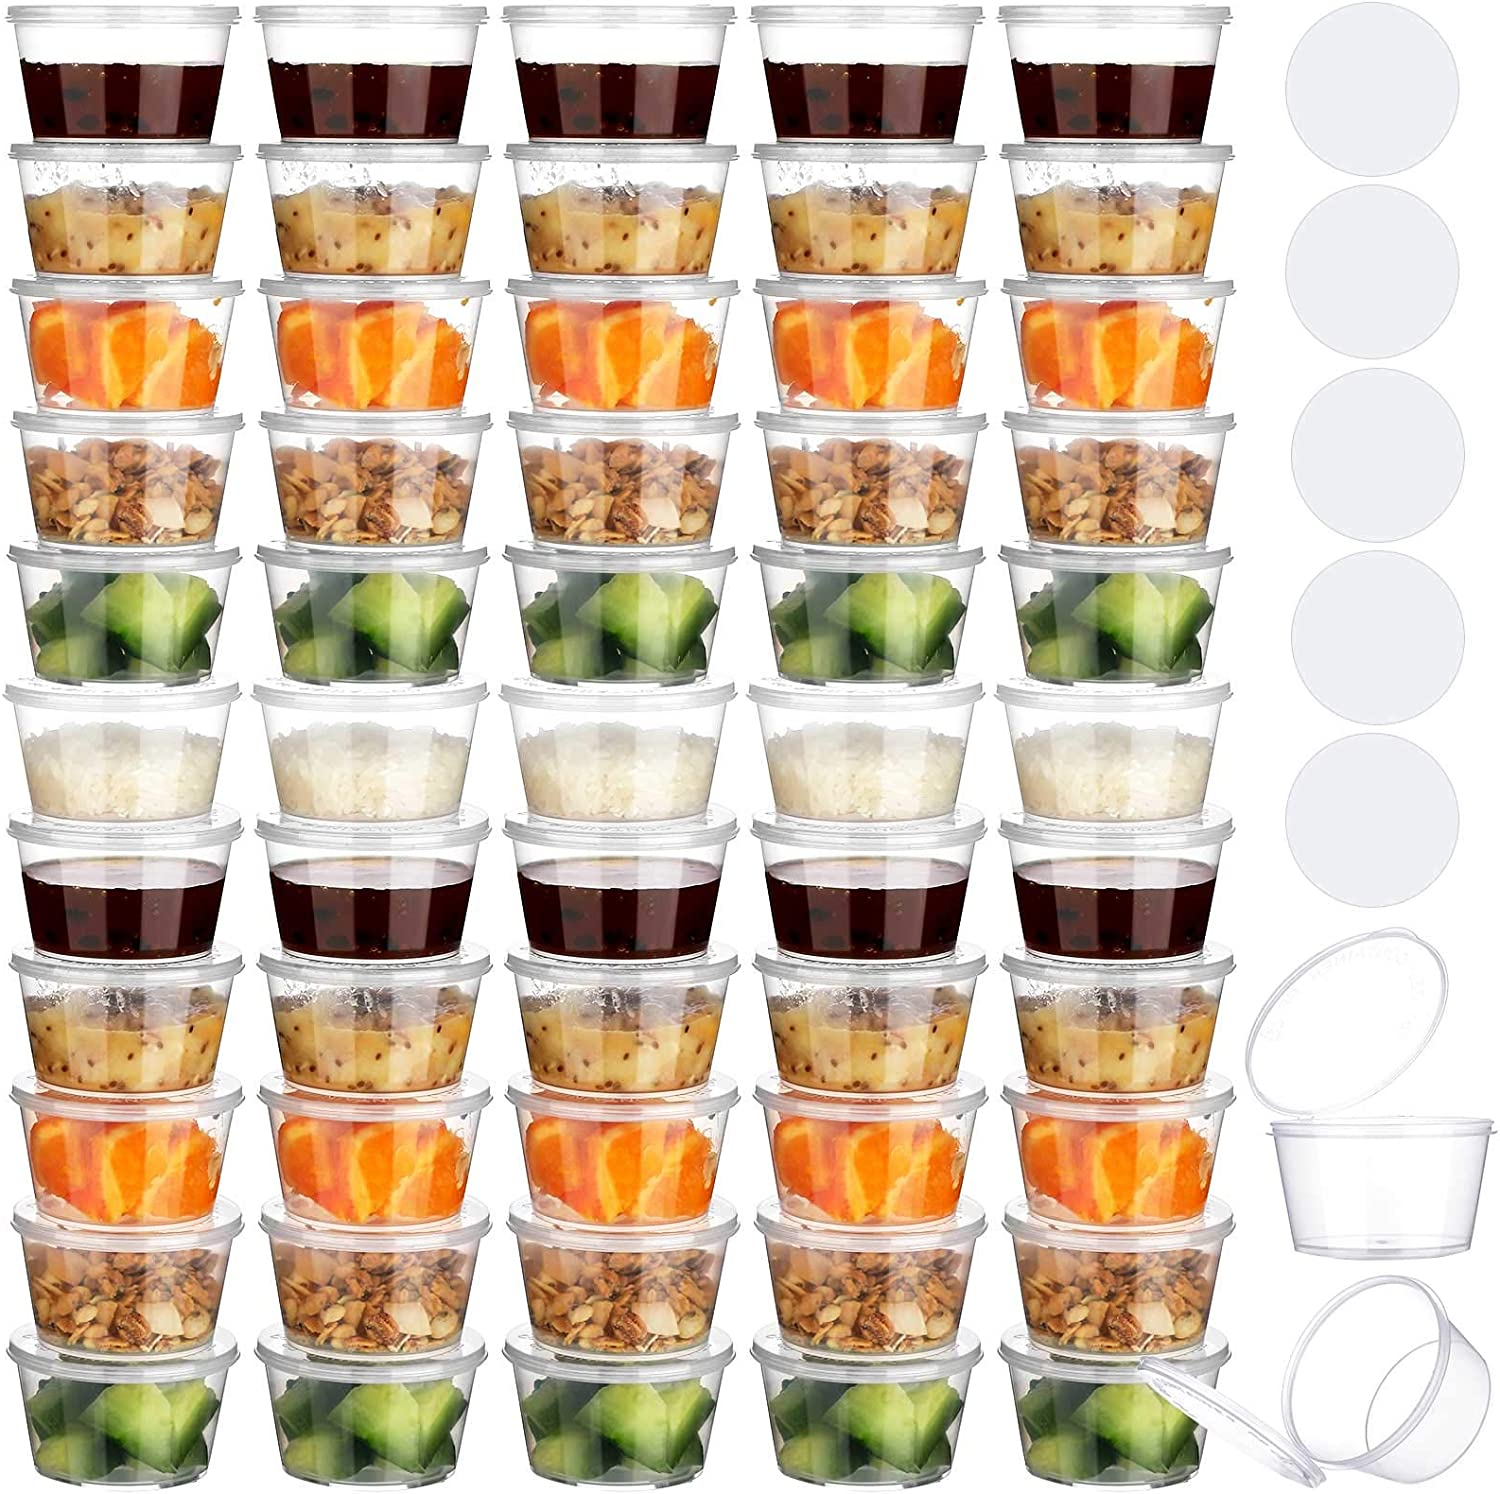 Loyim 60 Pieces BPA-Free Baby Food Freezer Storage Containers Leak-Proof Baby Plastic Deli Containers and 2 Sheet White Sticker Label for Toddlers Baby Food or Snacks Storage